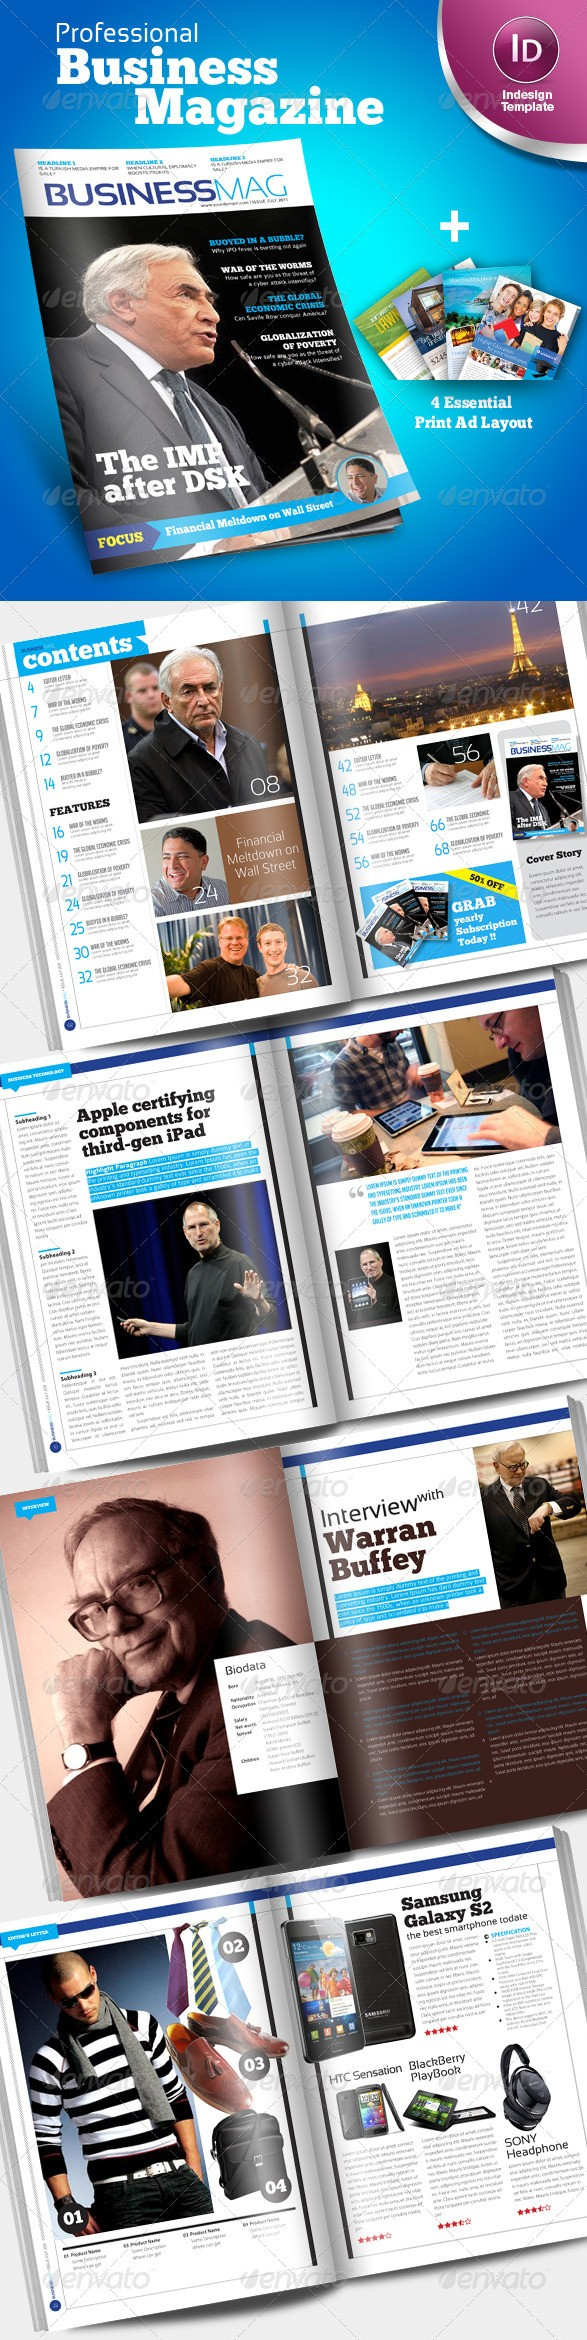 Professional Business Magazine Indesign template